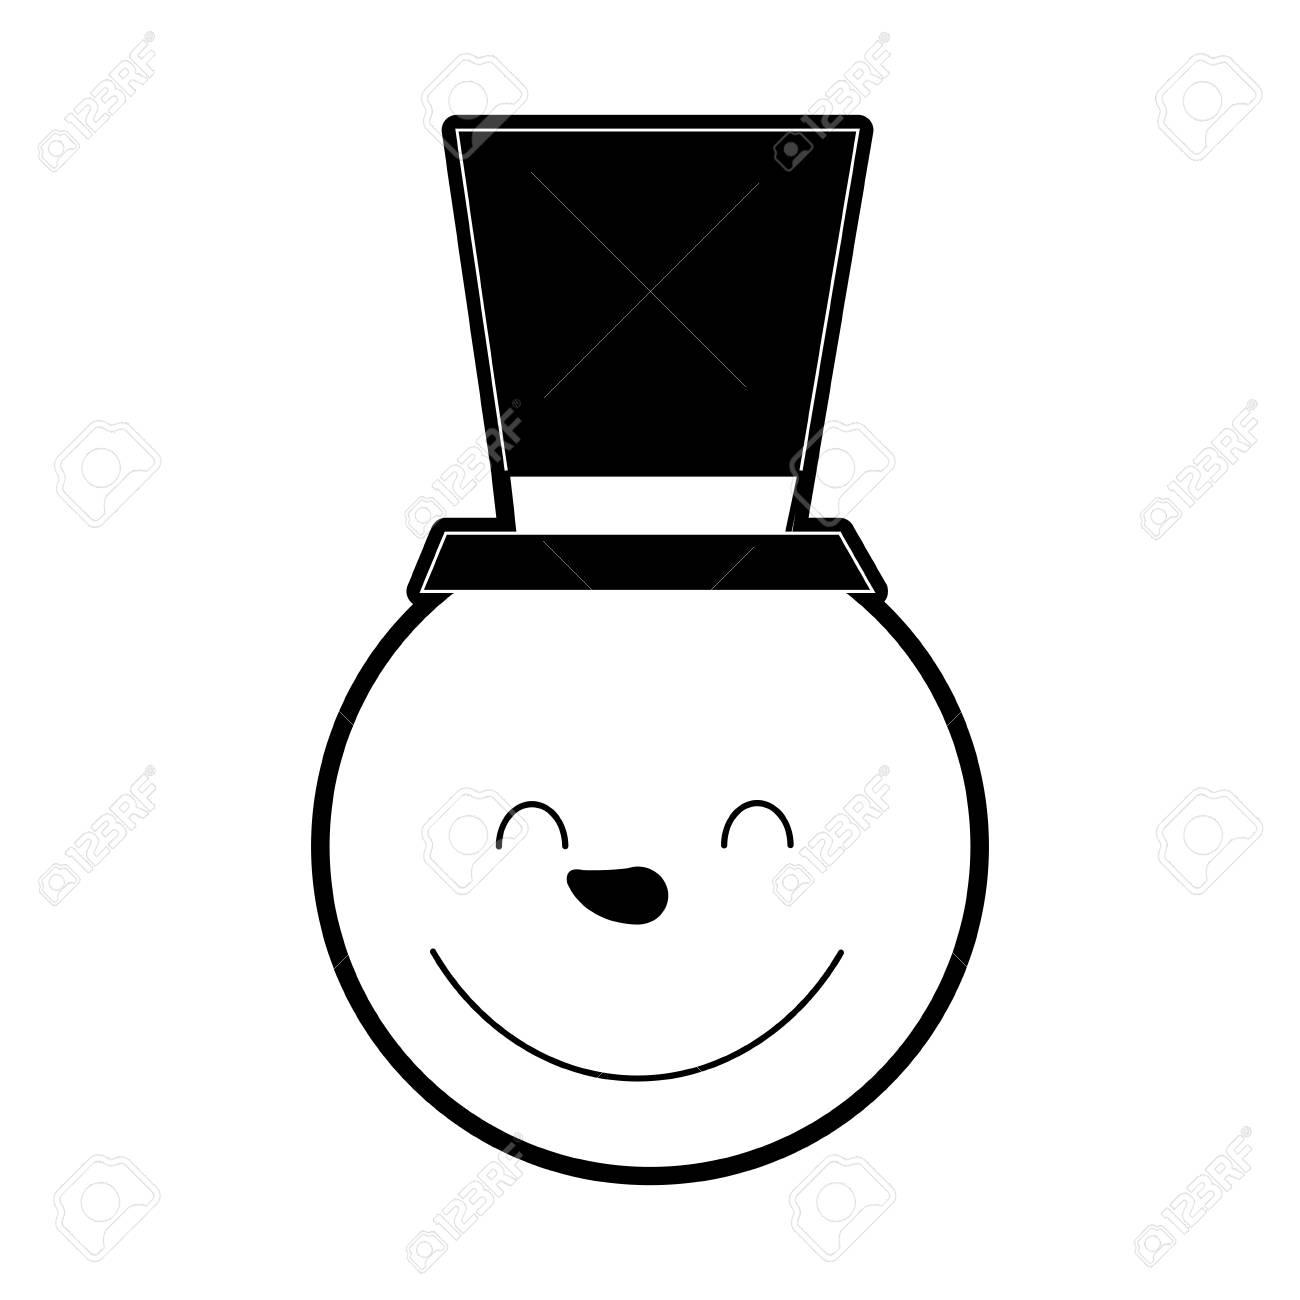 Simple Snowman Wearing a Red Scarf and a Black Top Hat clipart.  Royalty-free GIF, WMF, SVG clipart # 143259   Graphics Factory